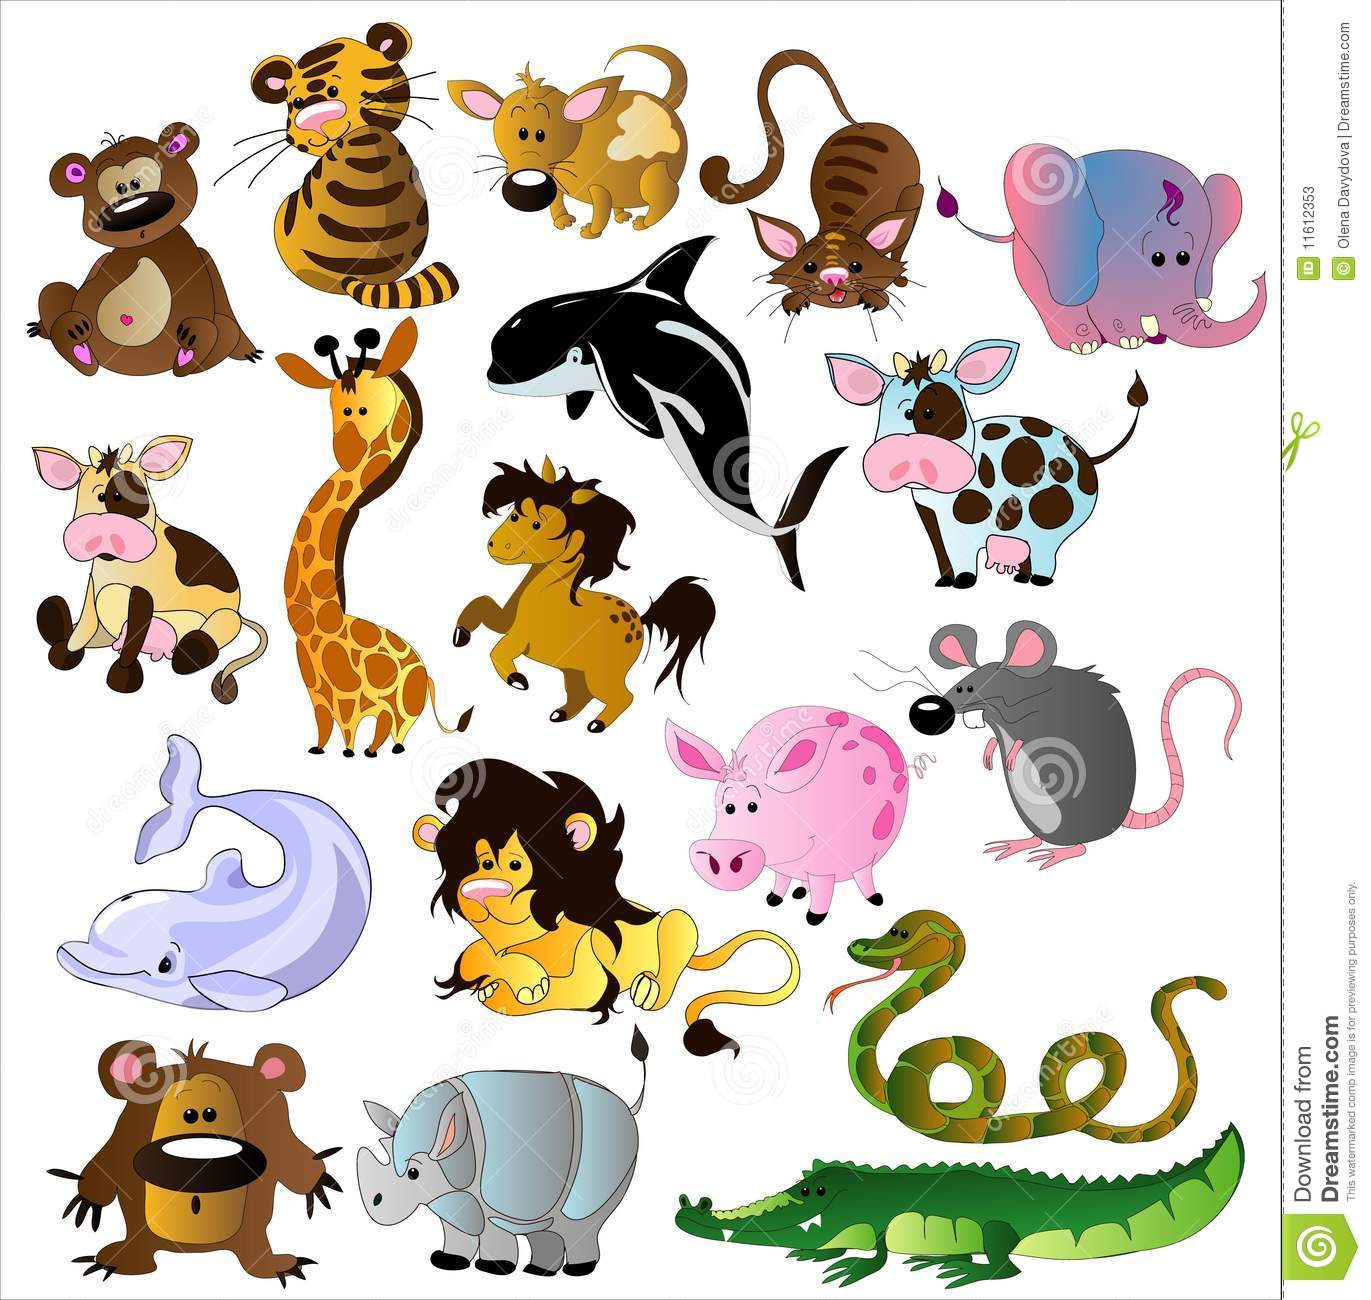 cartoon animals vector - Images Cartoon Animals